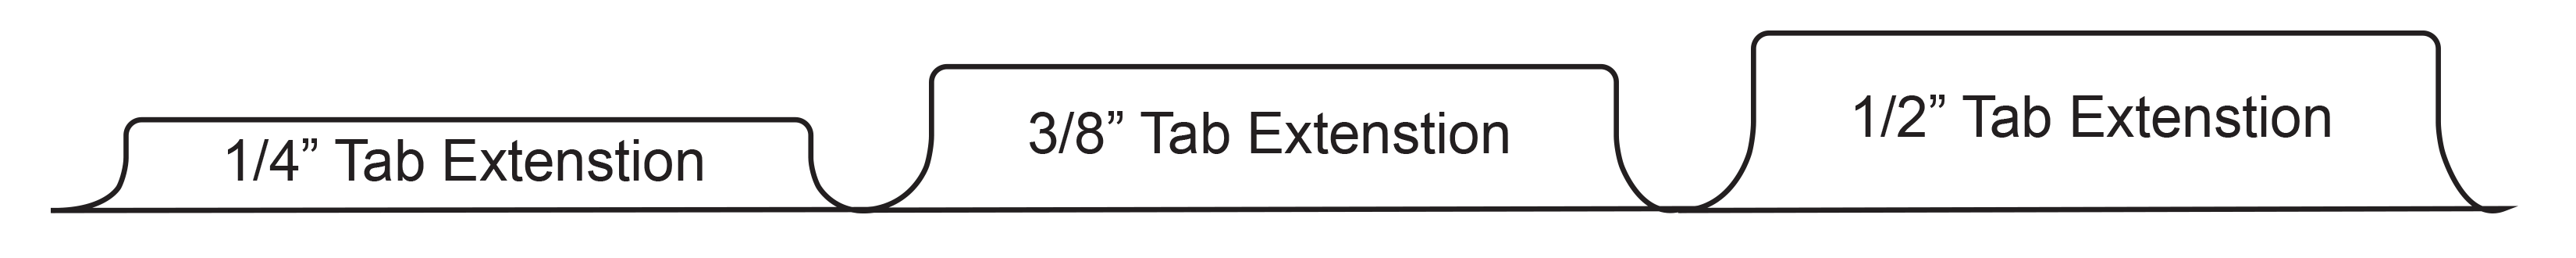 tab-extentions-unified-packaging-custom-tabs